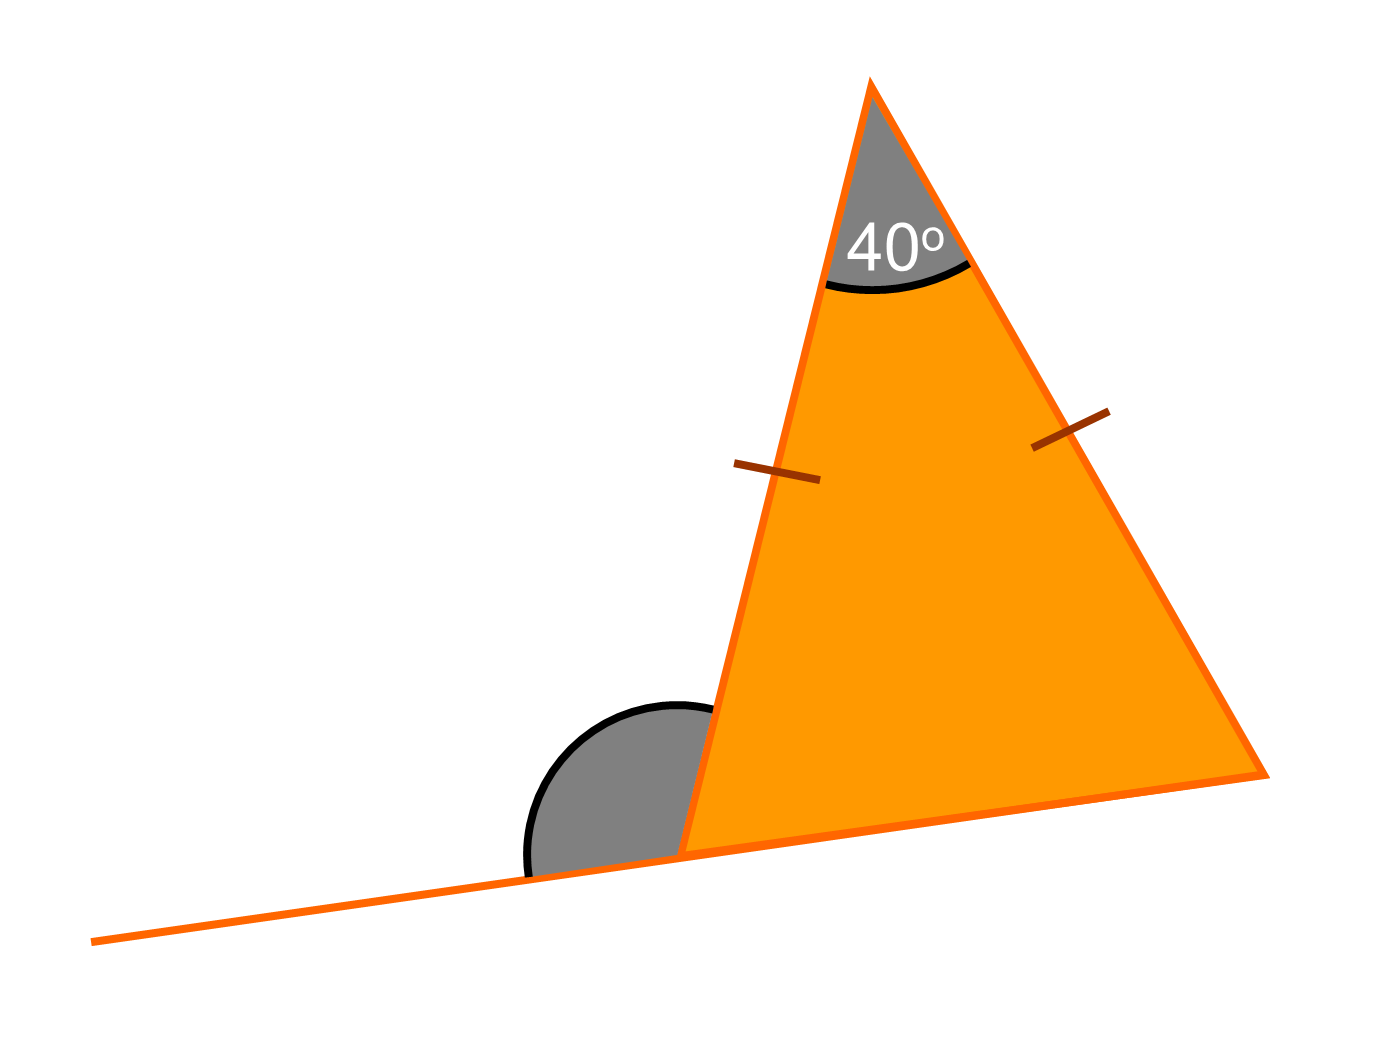 how to get the area of a isosceles triangle